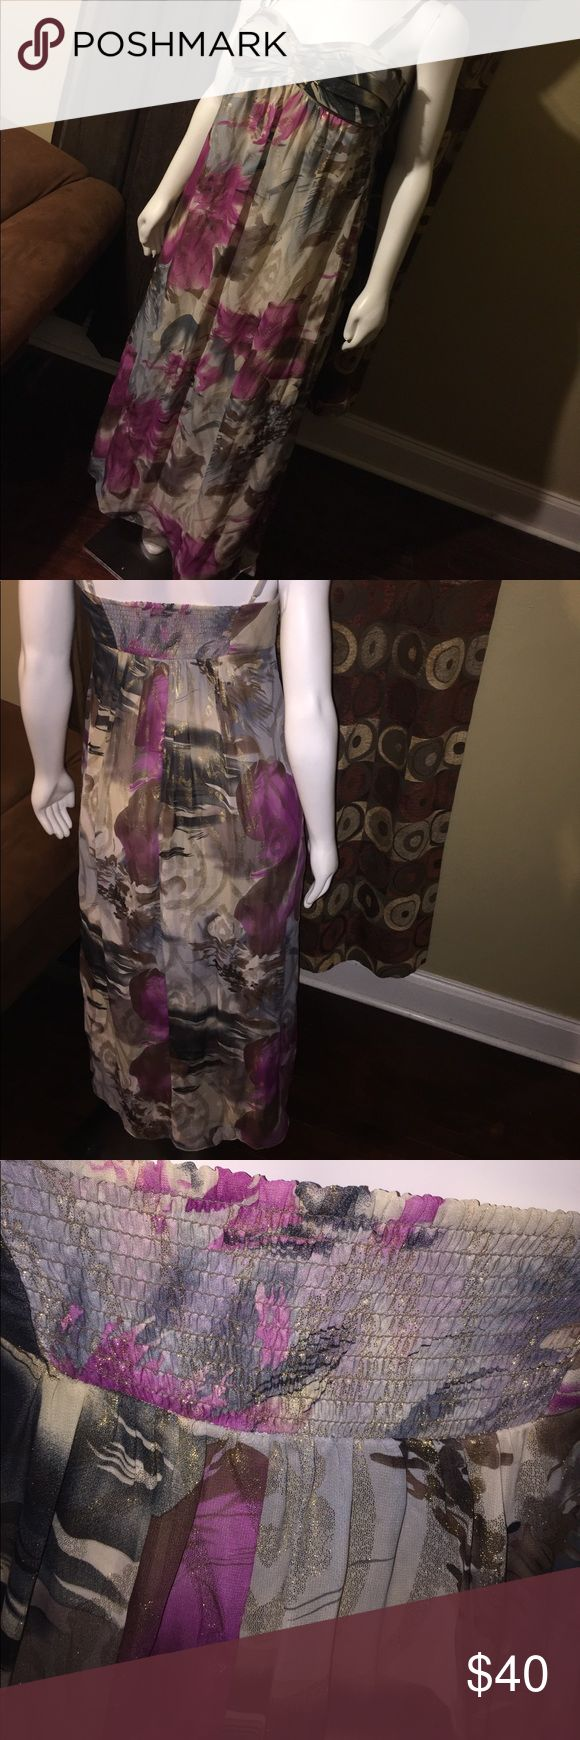 Ladies Evening Gown by Robbie Bee (Macy's) Worn once! Still in perfect condition! Shimmery! Adjustable straps! Lined from top to bottom! Including bra! Women's size 14! Polyester! Signature by Robbie Bee Dresses Maxi